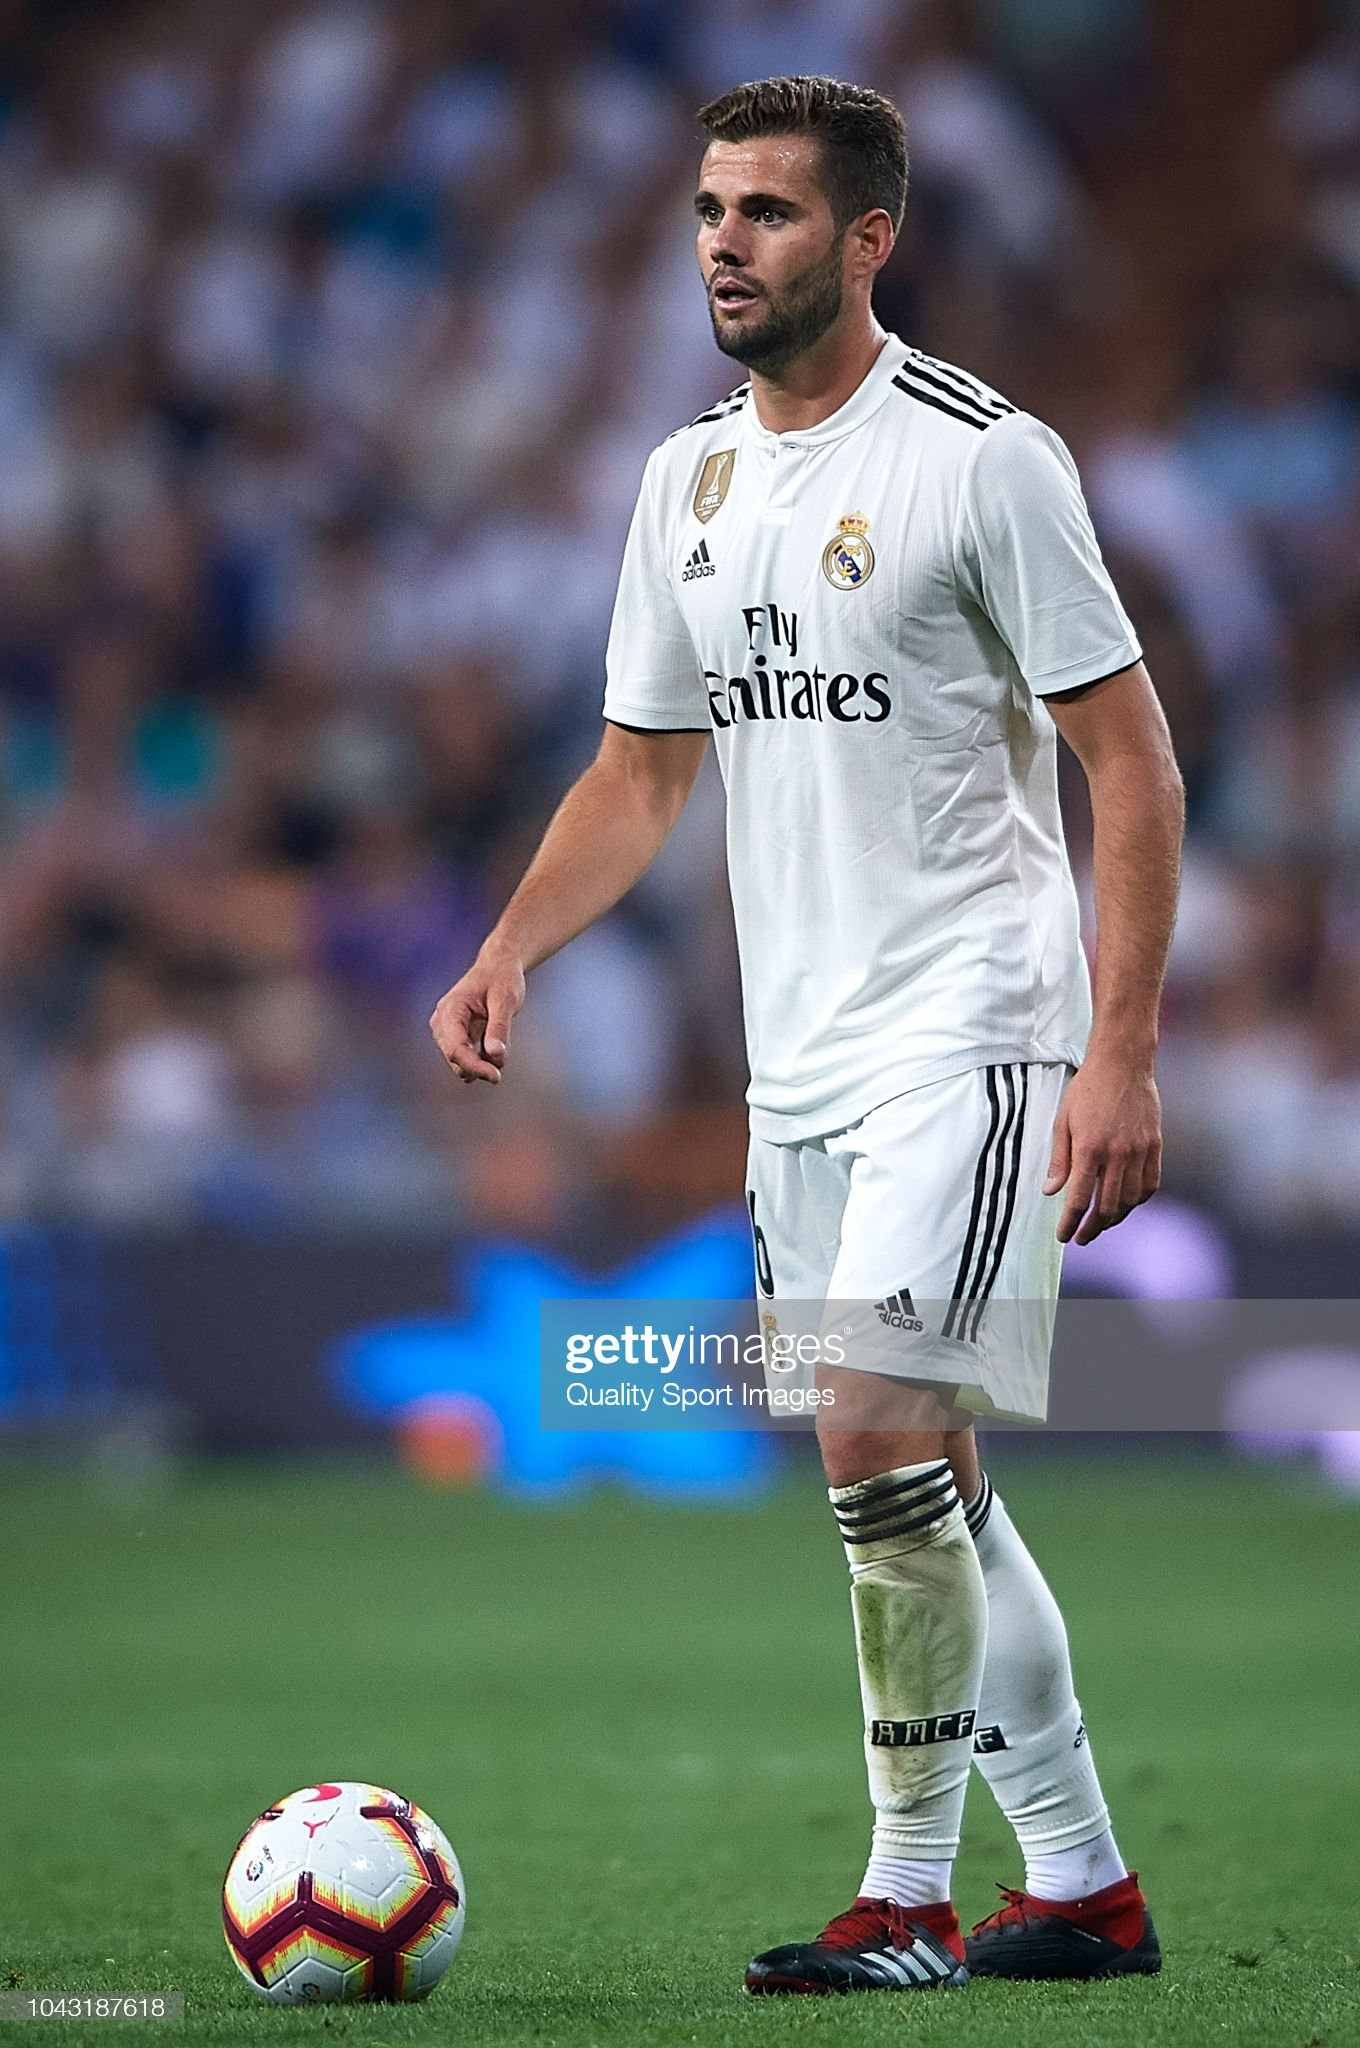 ¿Cuánto mide Nacho Fernández? - Altura Nacho-fernandez-of-real-madrid-in-action-during-the-la-liga-match-picture-id1043187618?s=2048x2048